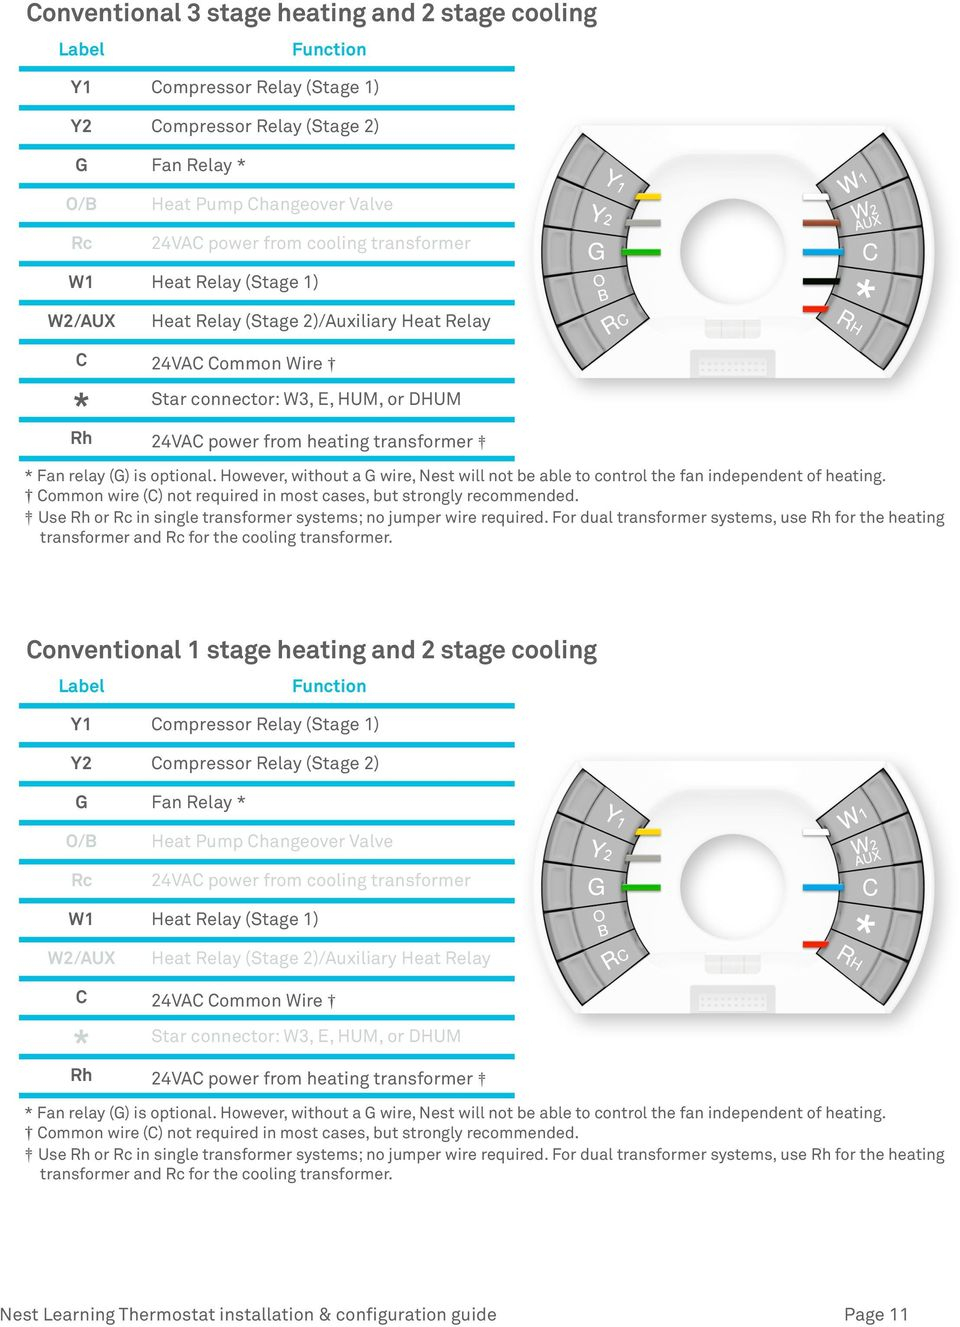 Heat And Cooling Thermostat Wiring Diagrams For Two 3 Nest | Wiring - Nest Wiring Diagram Heat Pump